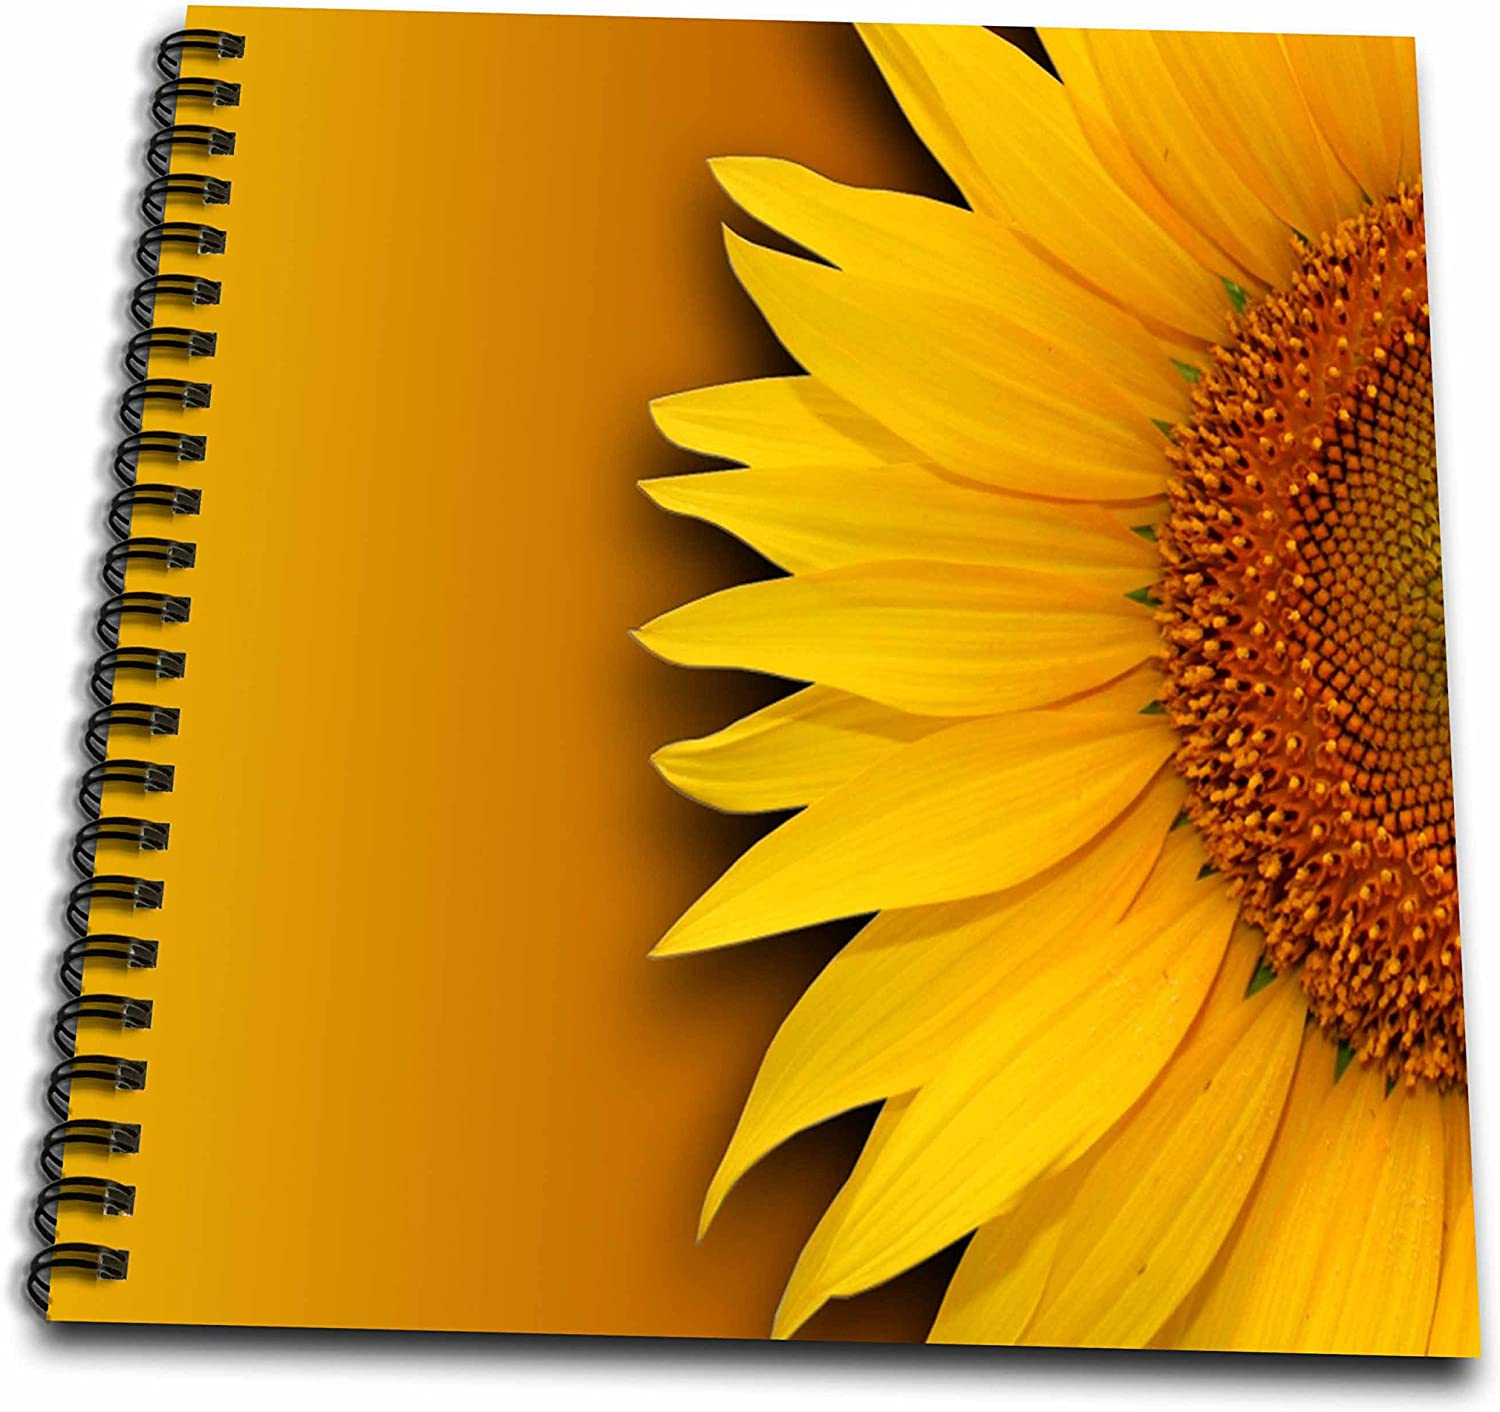 Amazon Com 3drose Db 284605 1 Floral Vibrant Sunflower Drawing Book 8 By 8 Inch Multicolor Arts Crafts Sewing